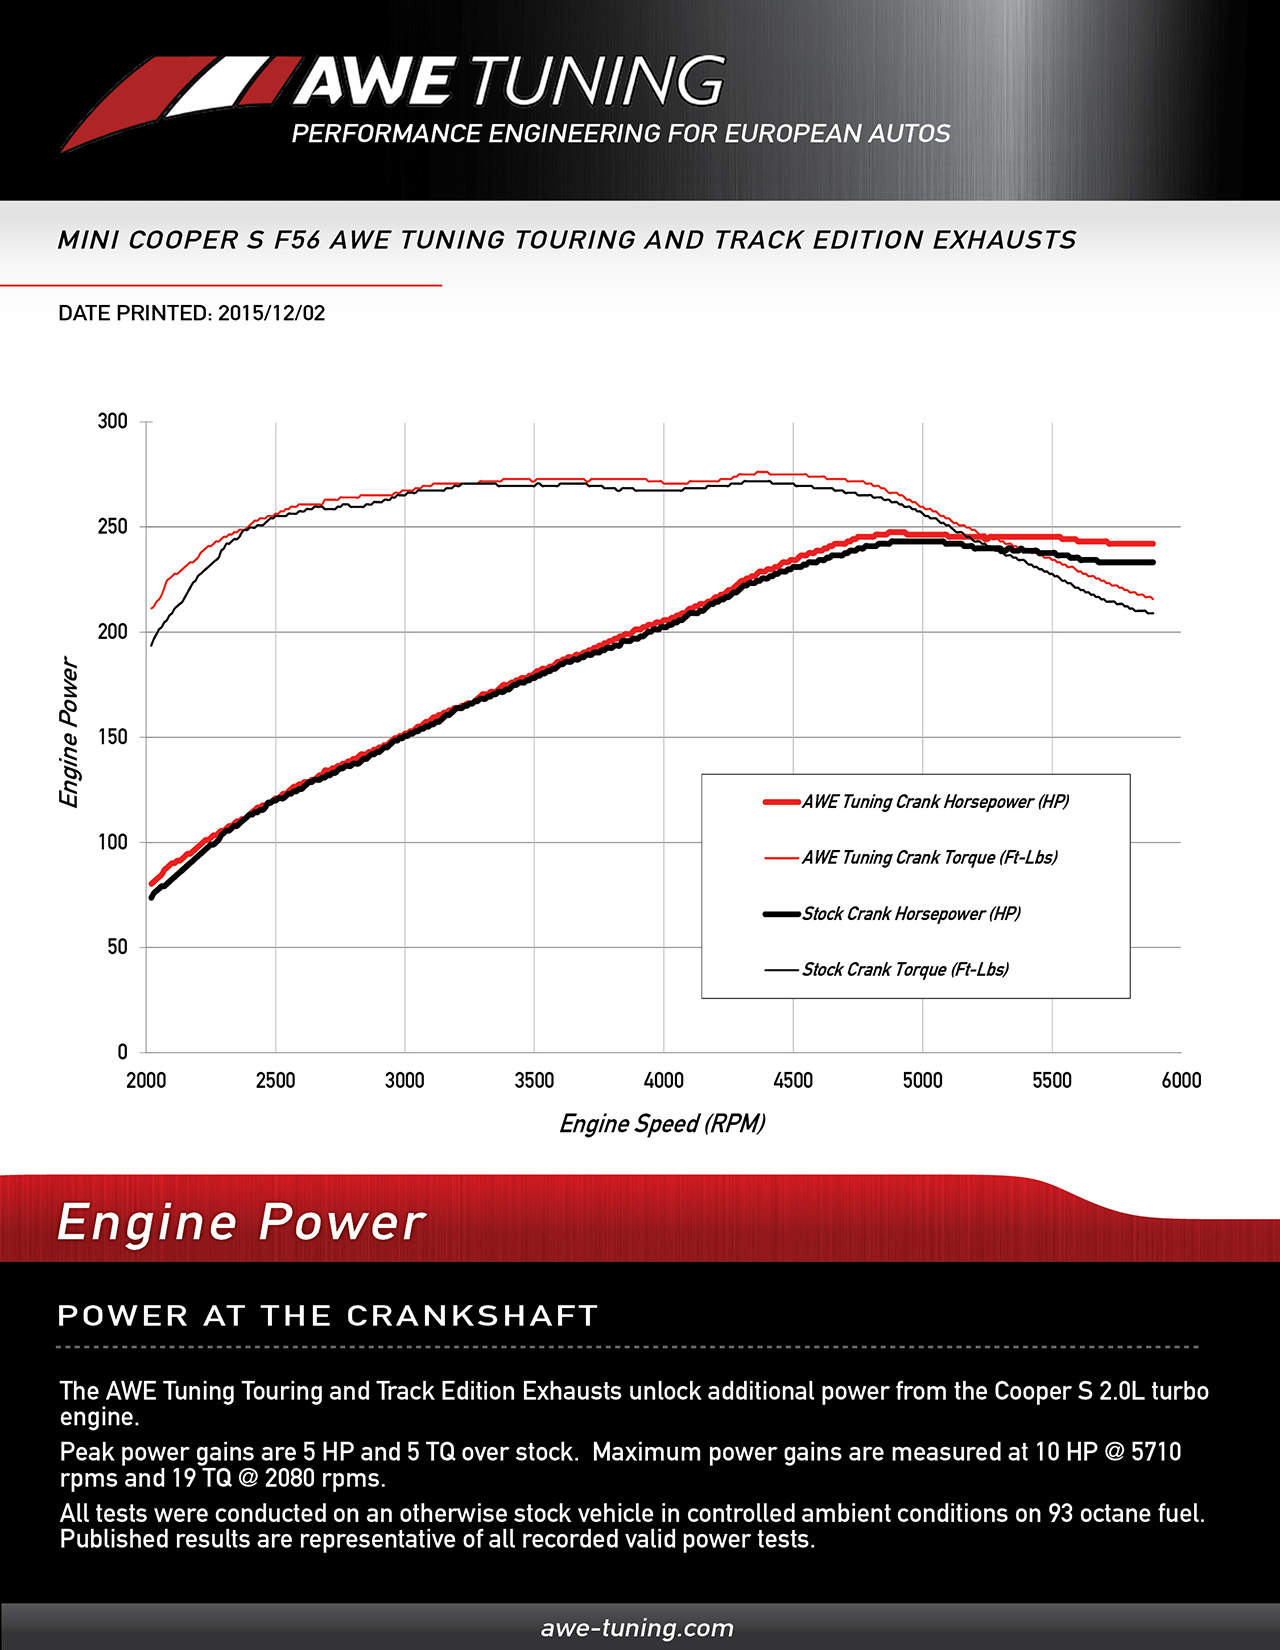 Awe Tuning Mini F56 Exhaust Cooper Turbo Engine Schematics Crank Horsepower Gains For The System